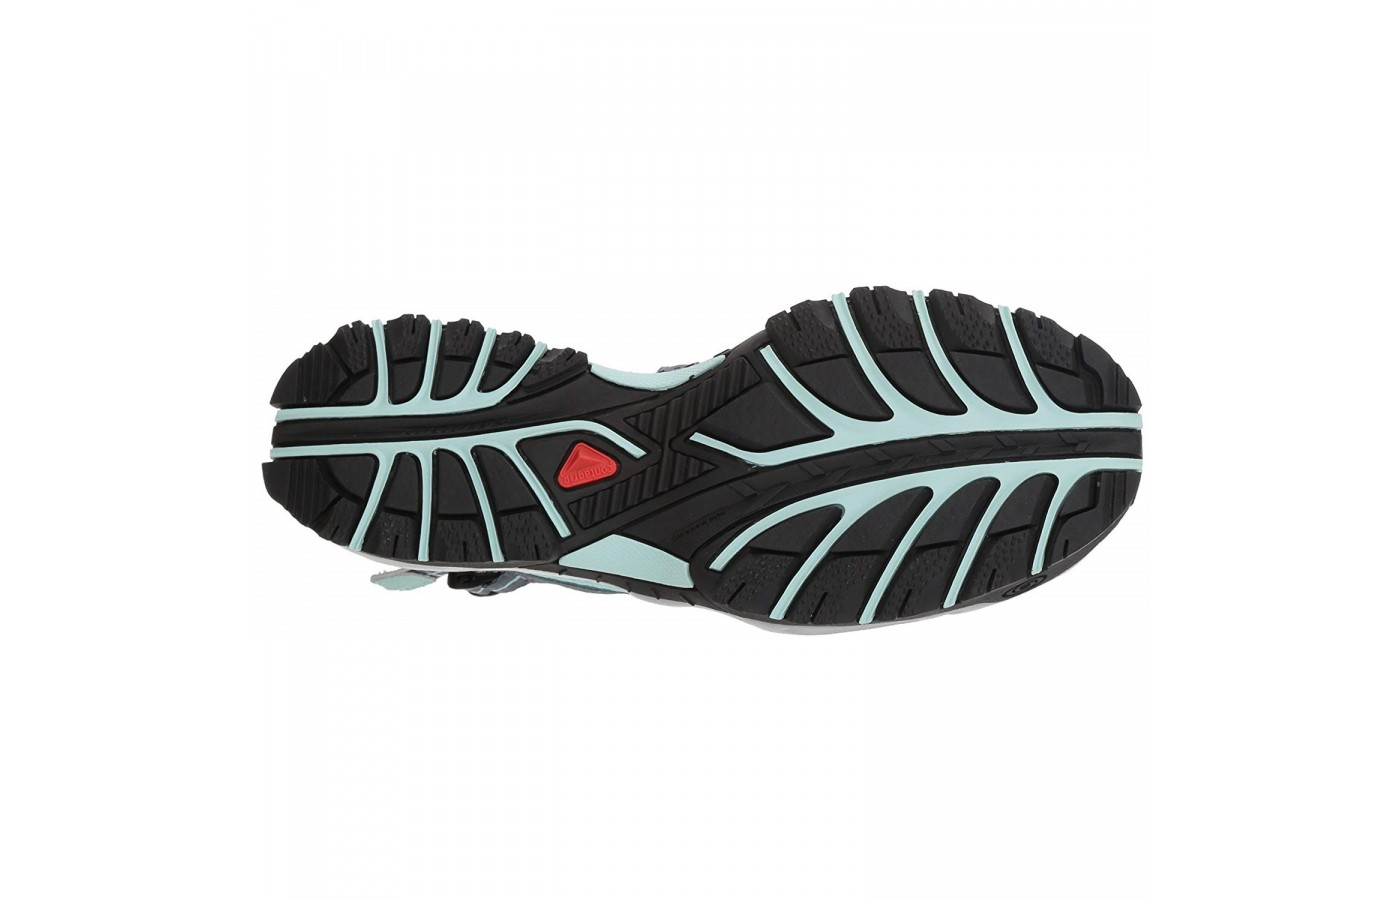 The Salomon Techamphibian 3 offers an incredibly grippy outsole for better traction on both wet and dry surfaces.